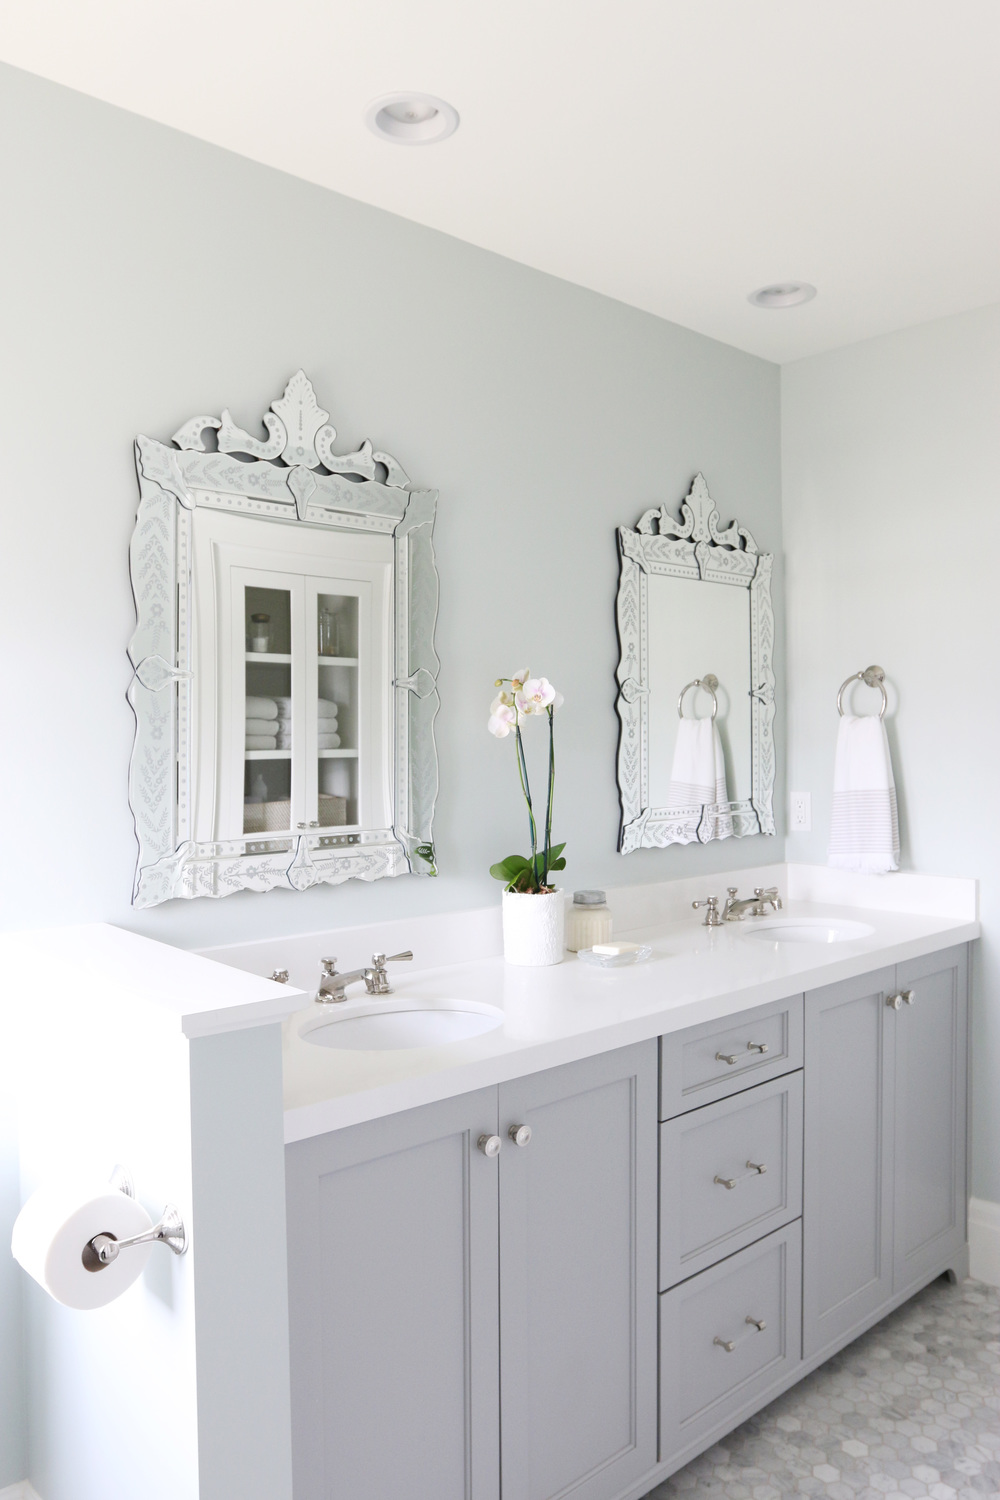 Fabulous Wall paint color Sea Salt by Sherwin Williams